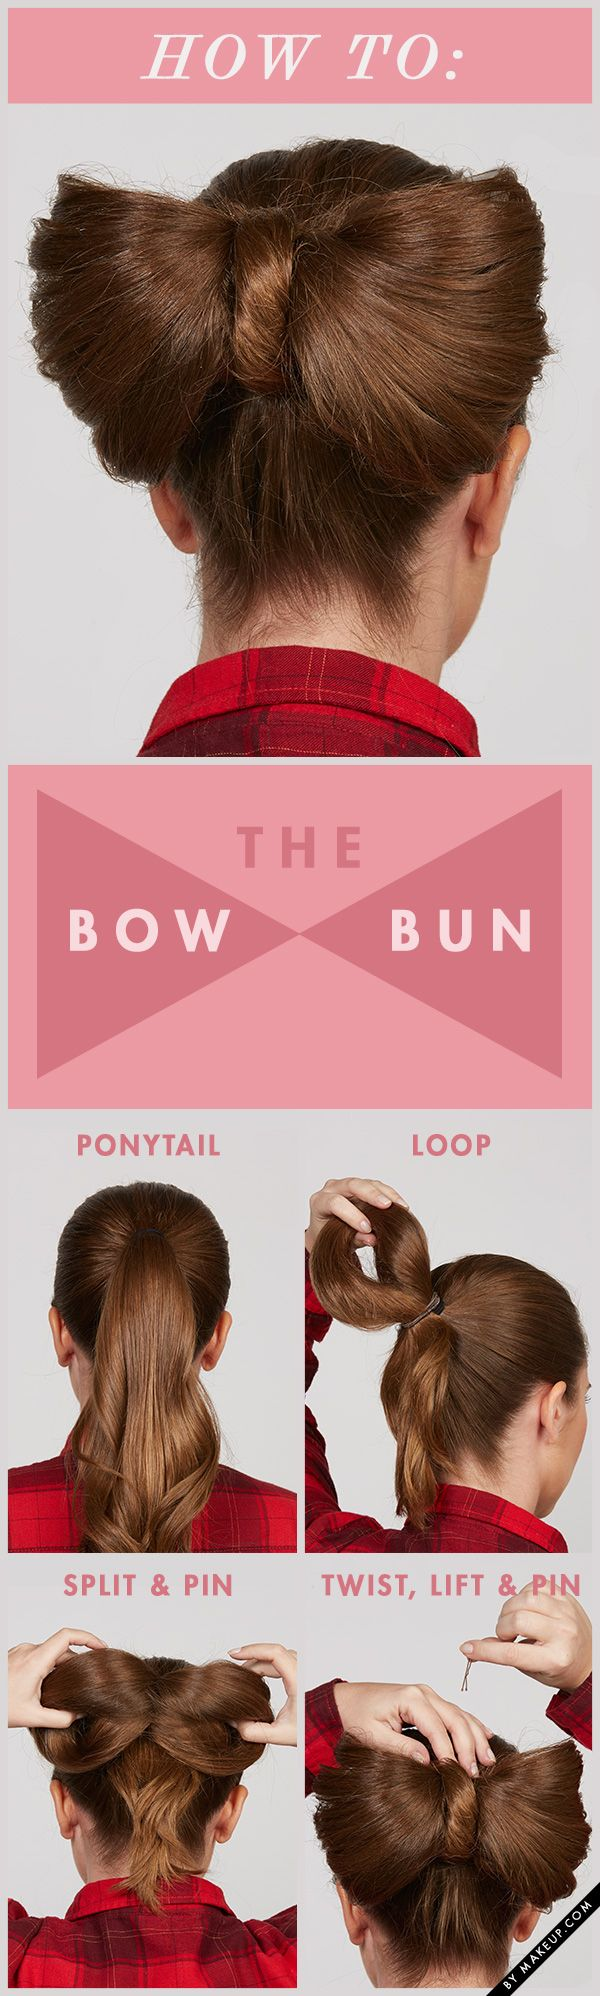 "Top knots, <a href=""http://www.makeup.com/messy-bun-how-to/"">messy buns</a>, sock buns, <a href=""http://www.makeup.com/braided-side-bun-tutorial/"">braided buns</a>, and the list goes on. It's safe to say our hair has spent of good portion of its life..."